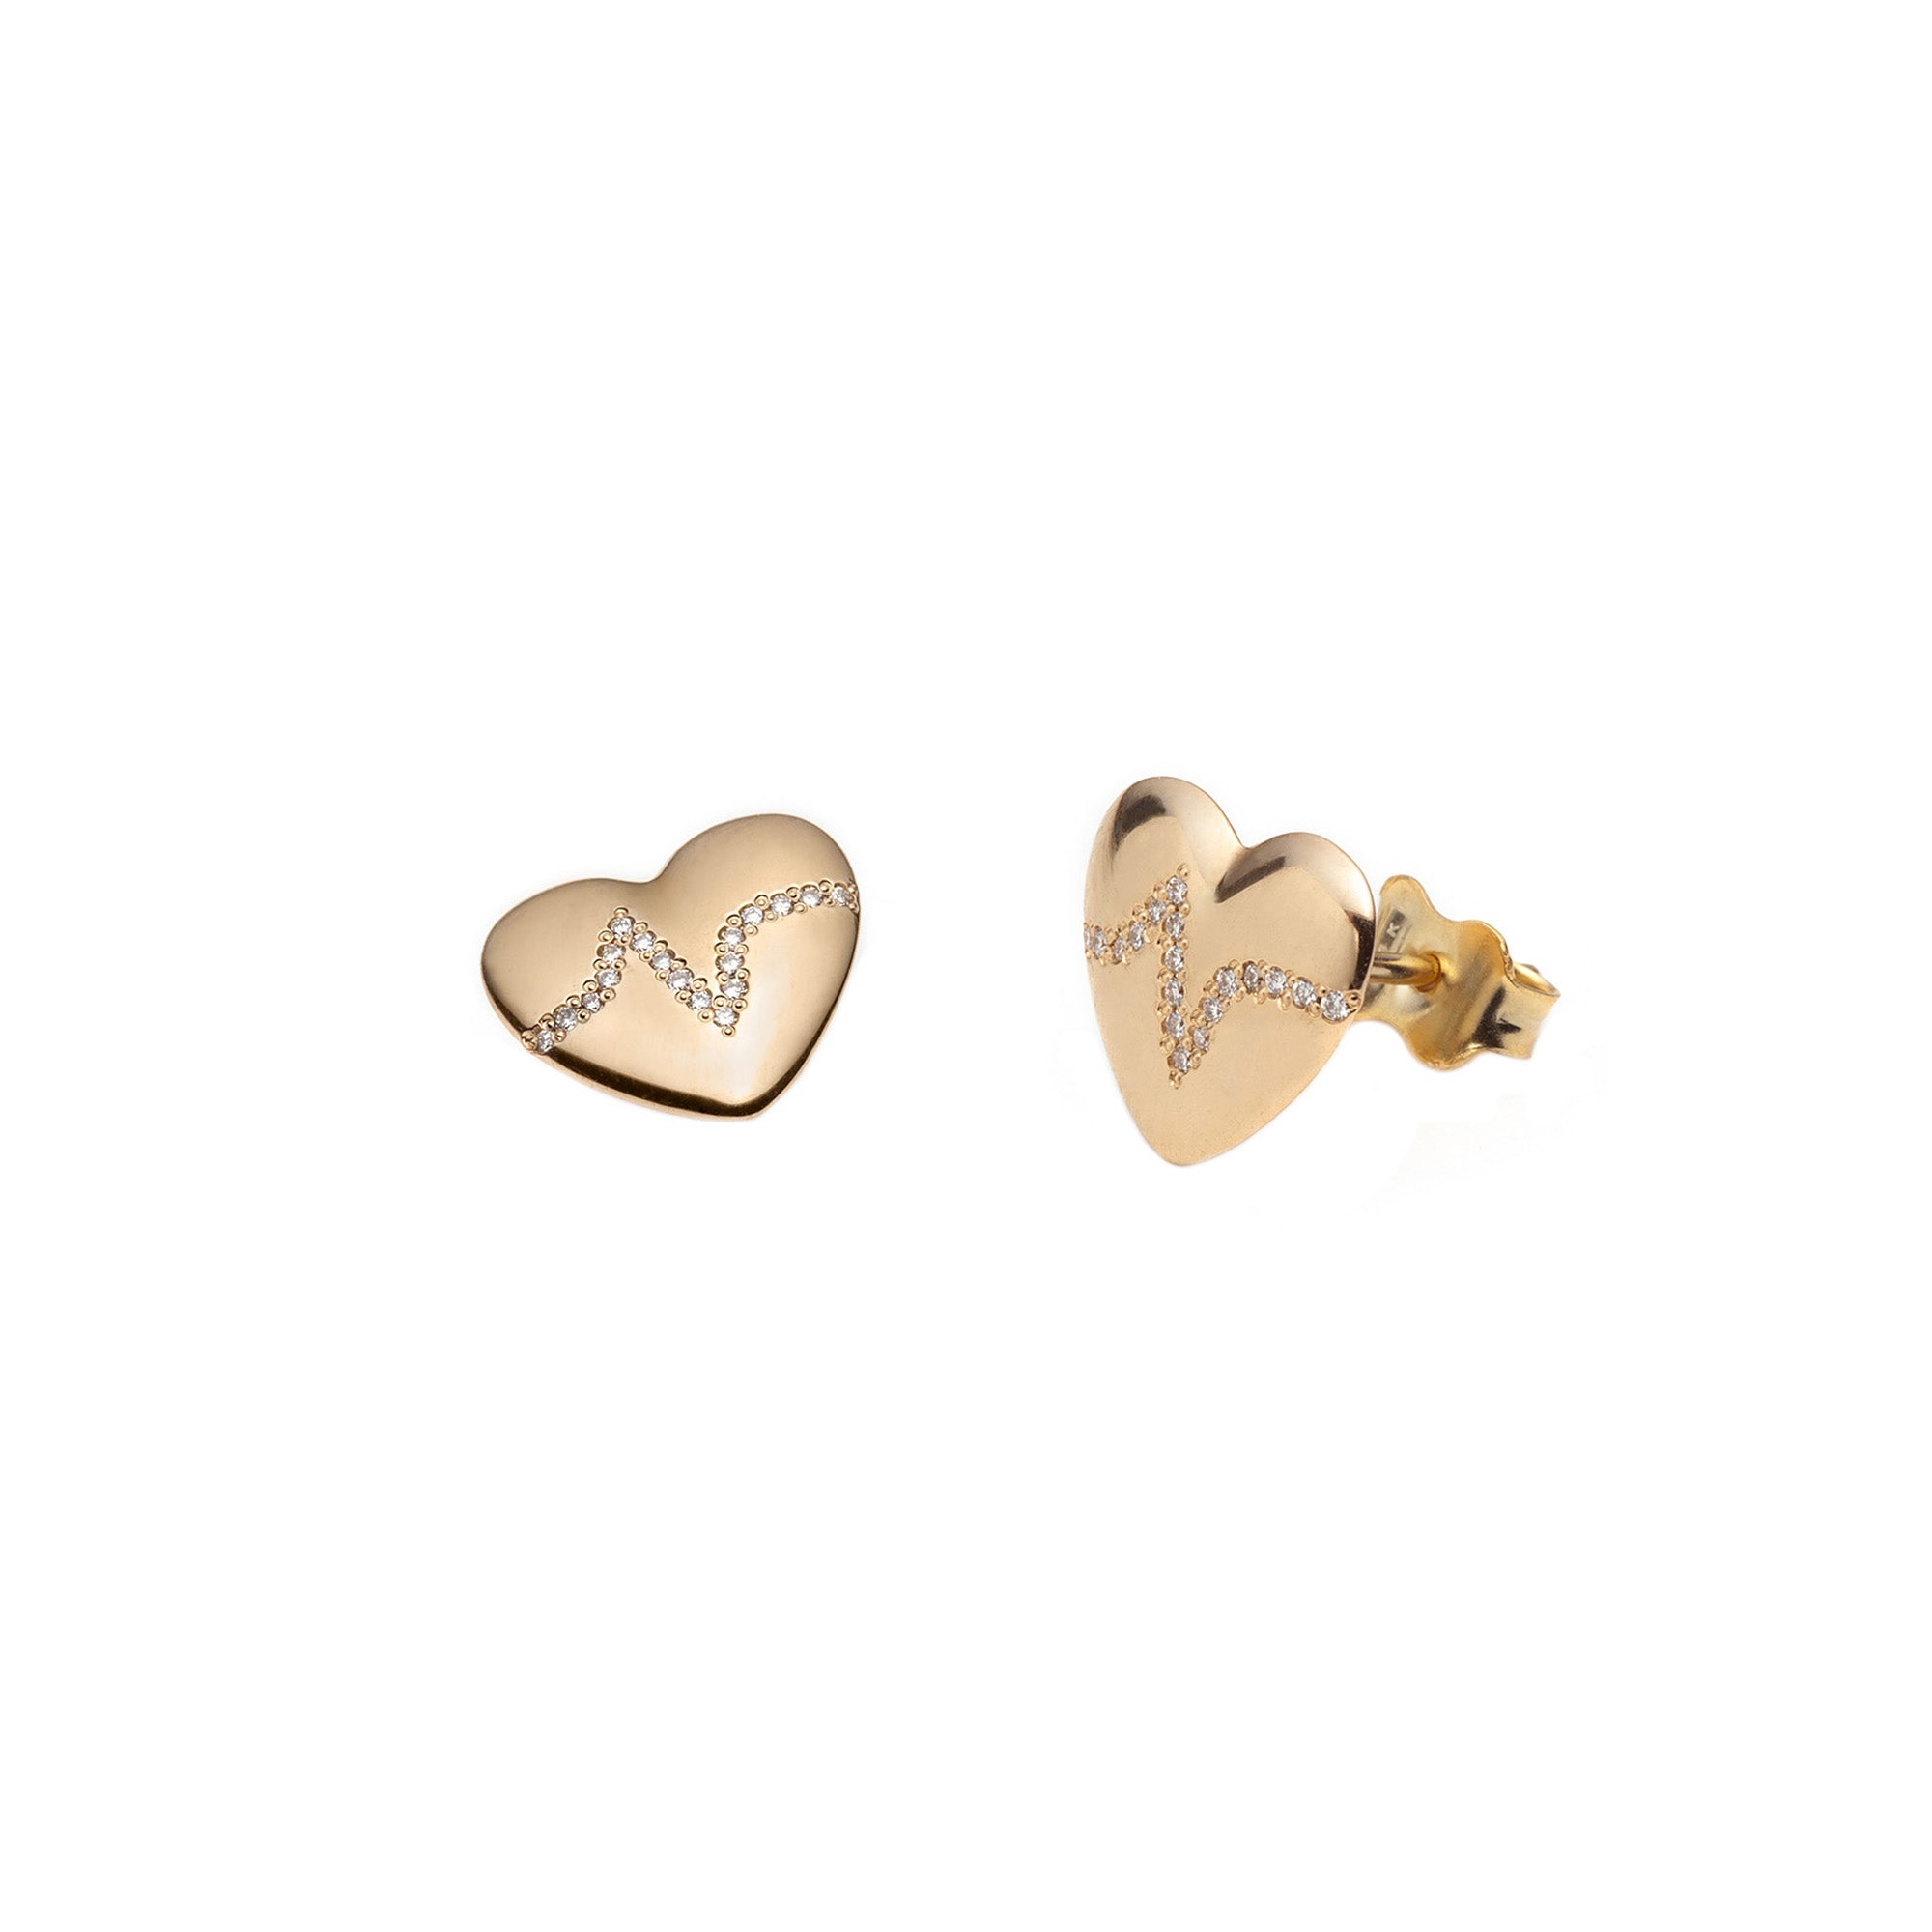 Heartbeat Studs by With Love Darling for Broken English Jewelry